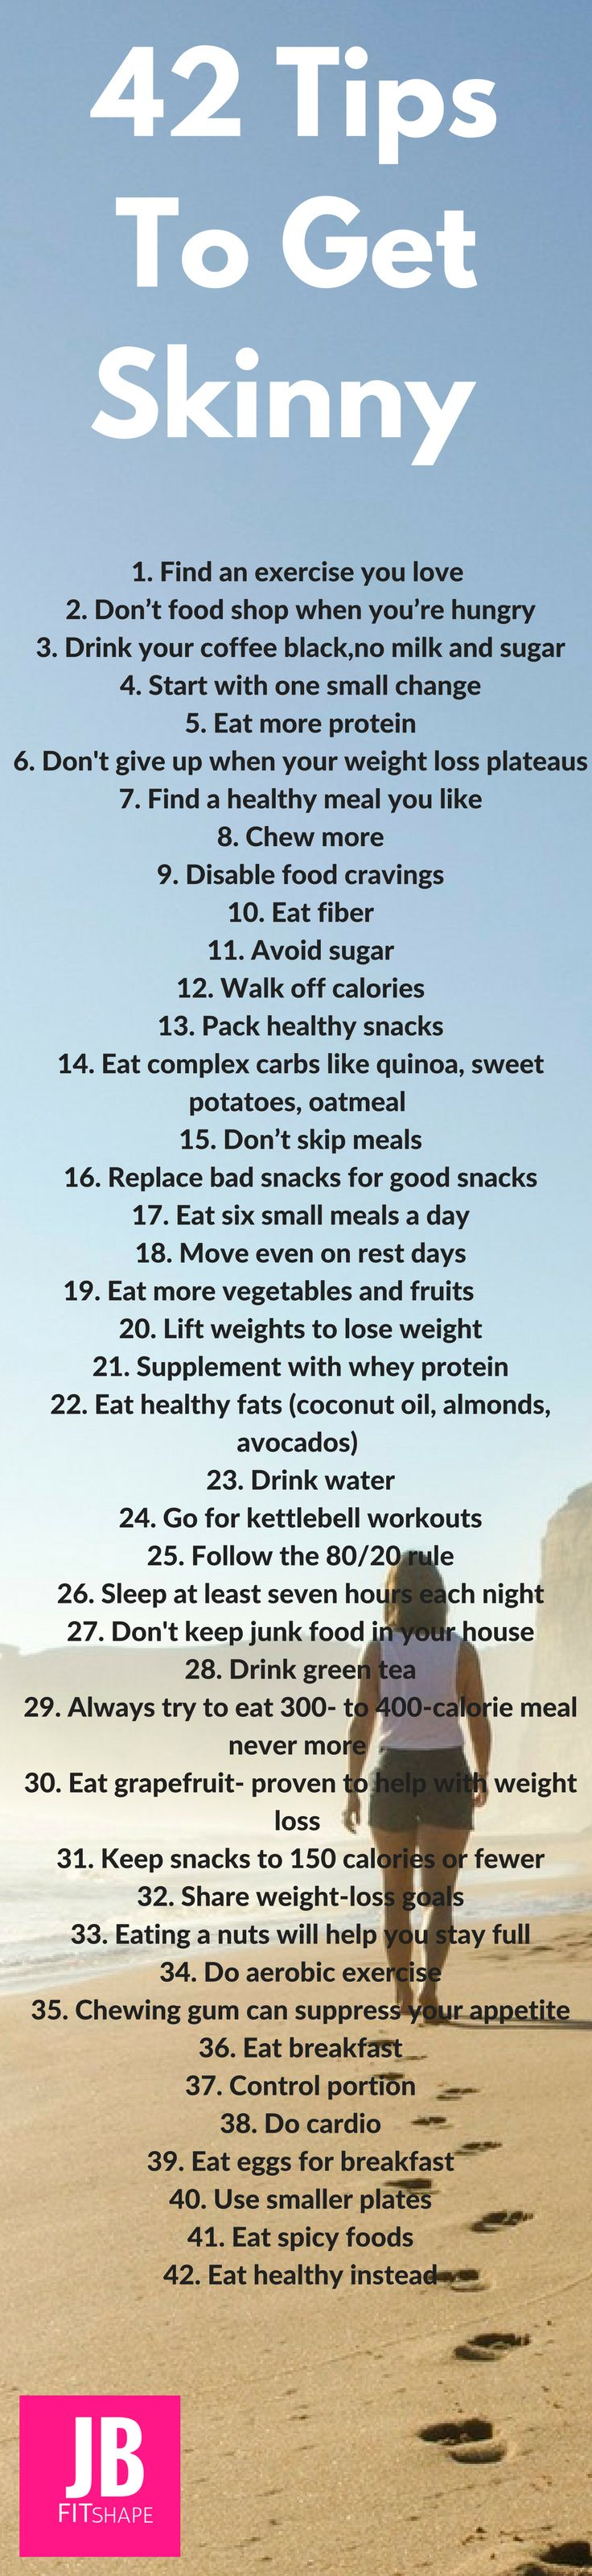 42 Weight Loss Tips To Get Skinny! Healthy weight loss tips. https://jbfitshape.wordpress.com/2016/11/18/10-tips-on-losing-weight-fast/